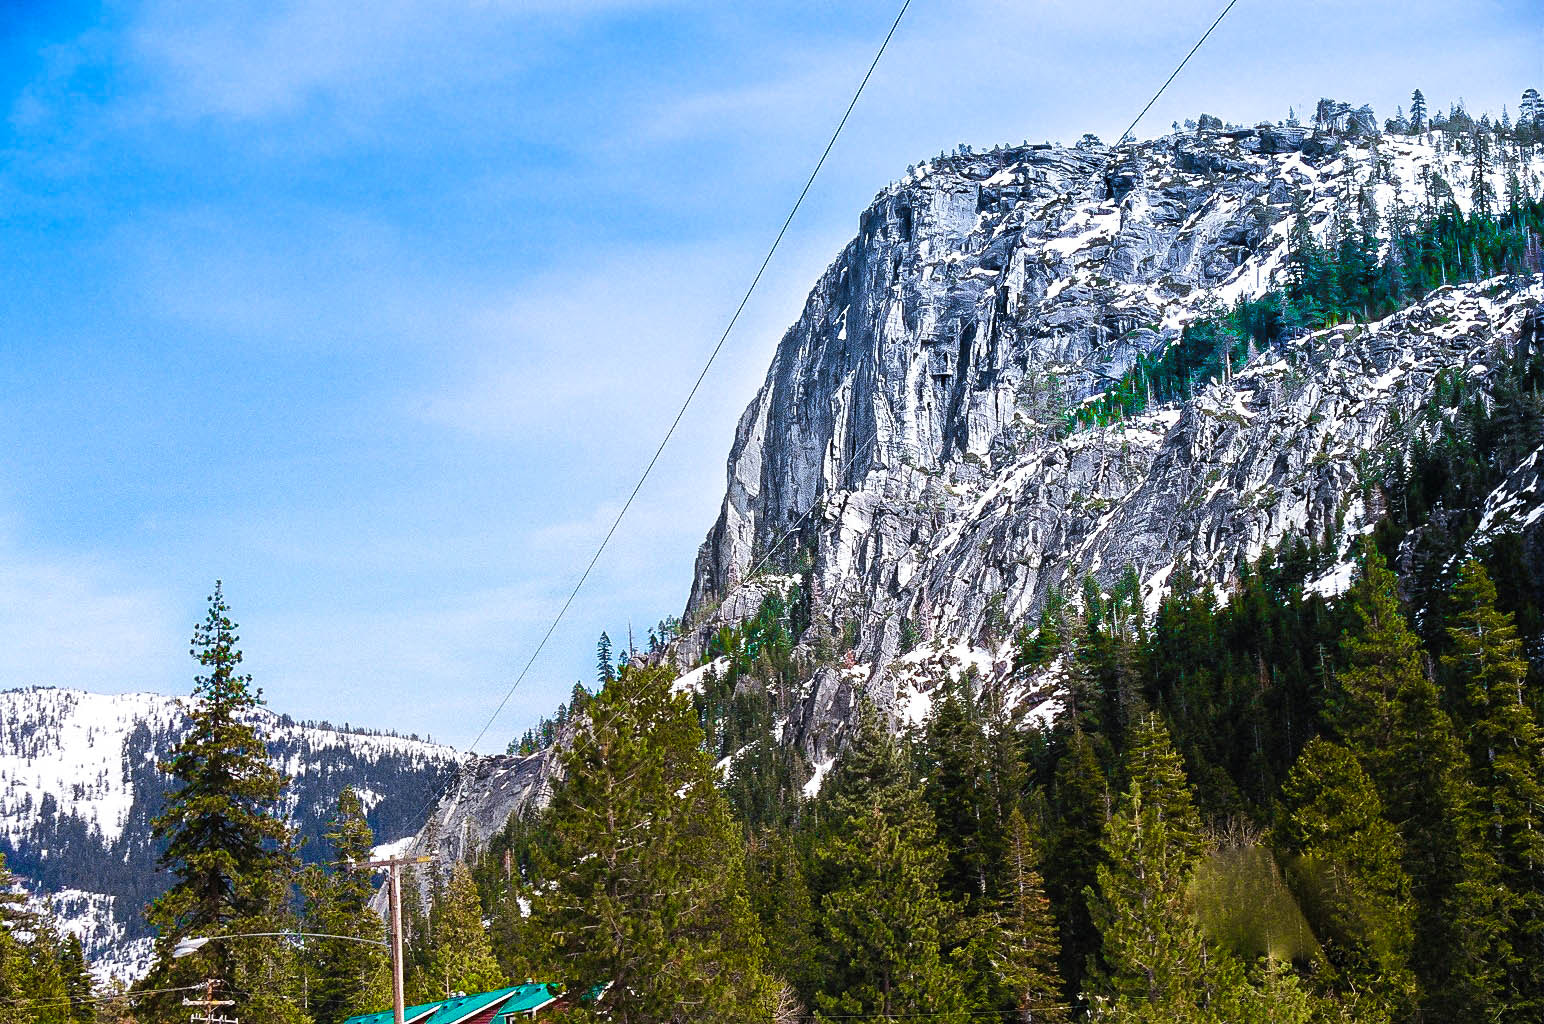 Photograph Lake Tahoe cable car by Jersey Joe on 500px